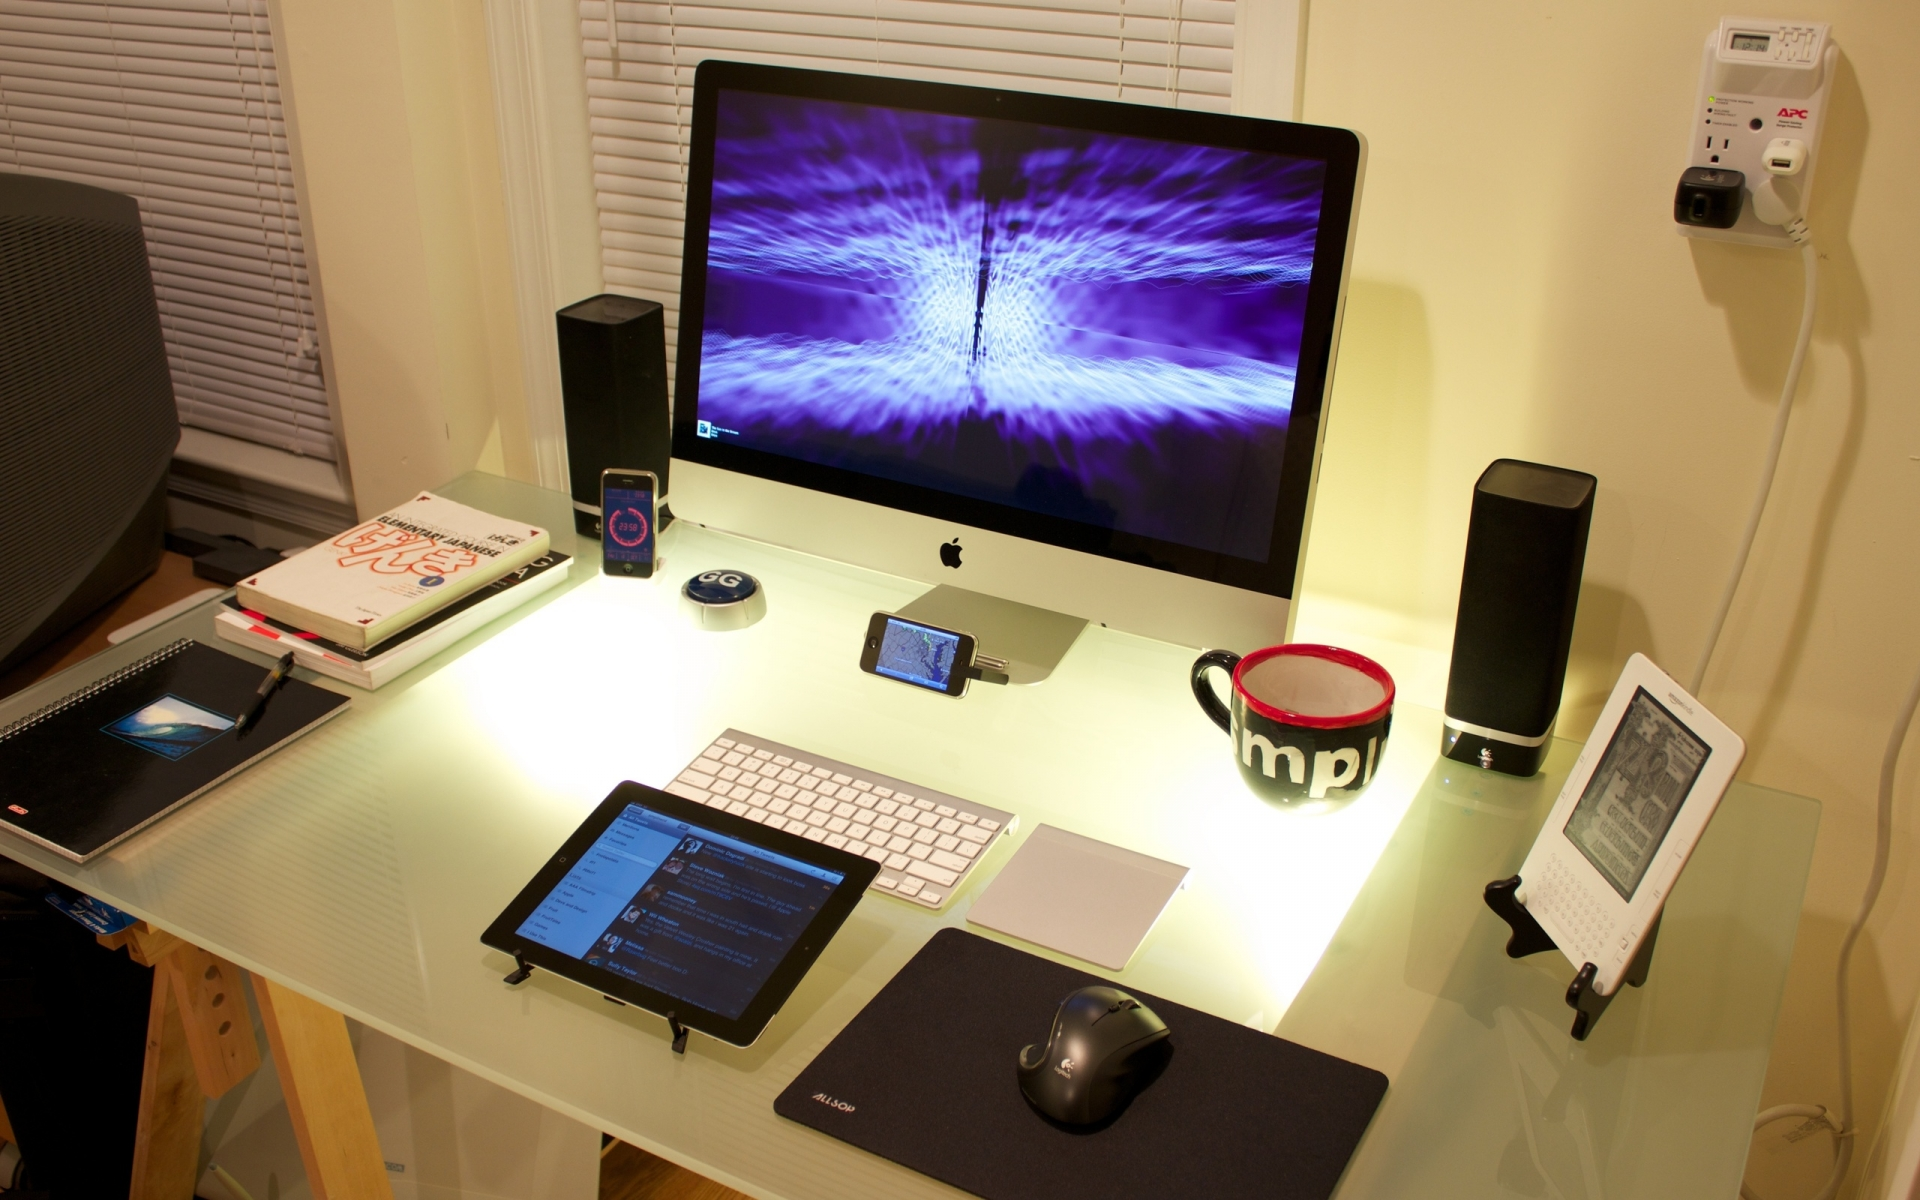 computer apple photography tech mech screen glass cup coffee speakers tablet electric